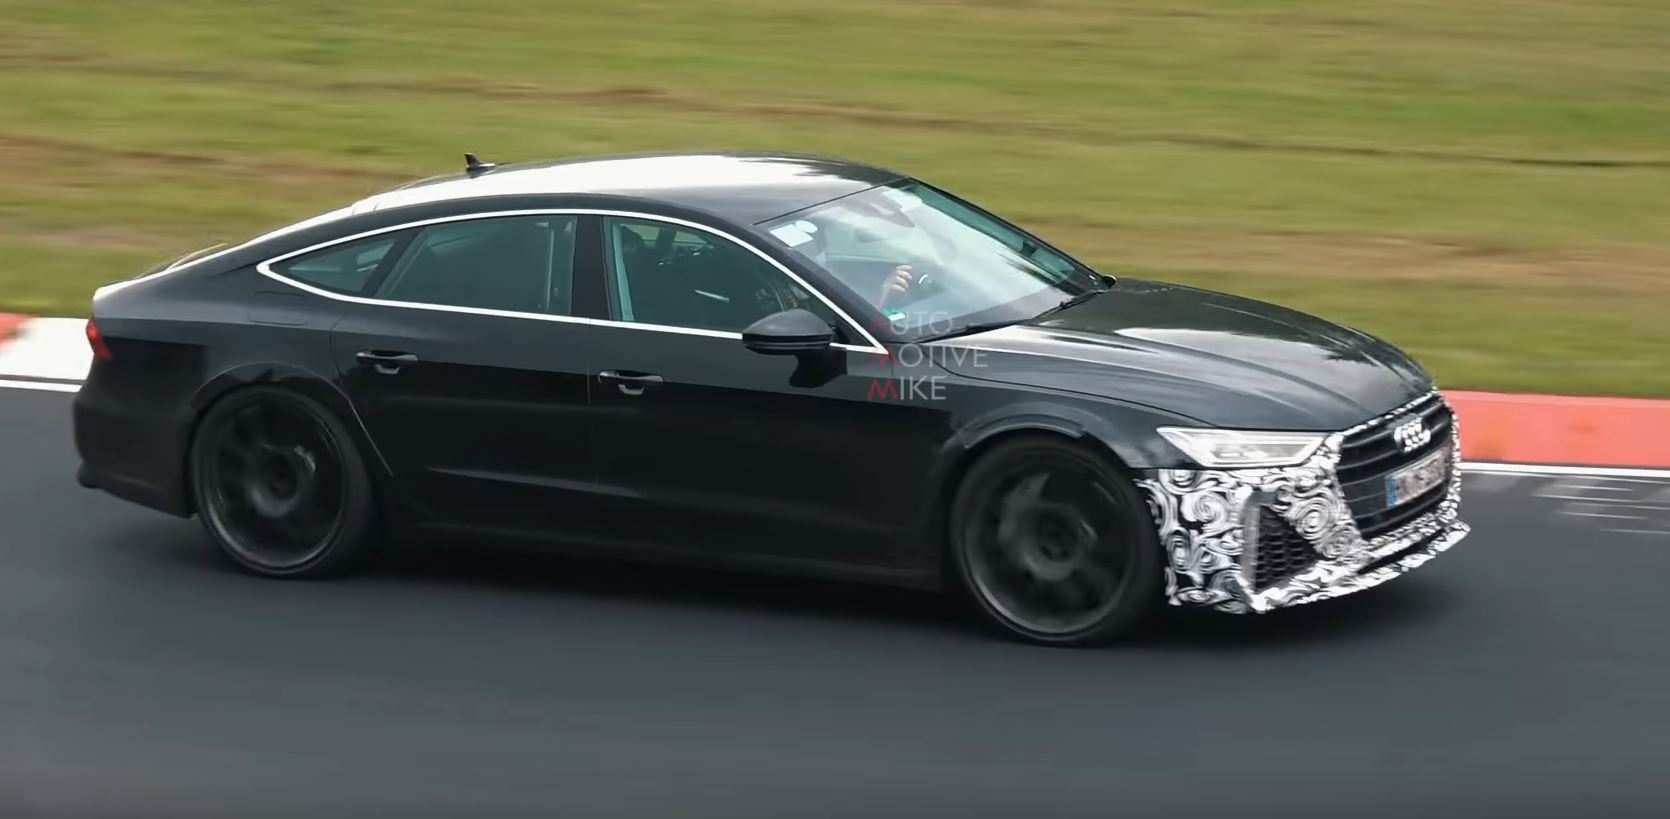 34 All New Audi Rs7 2020 First Drive